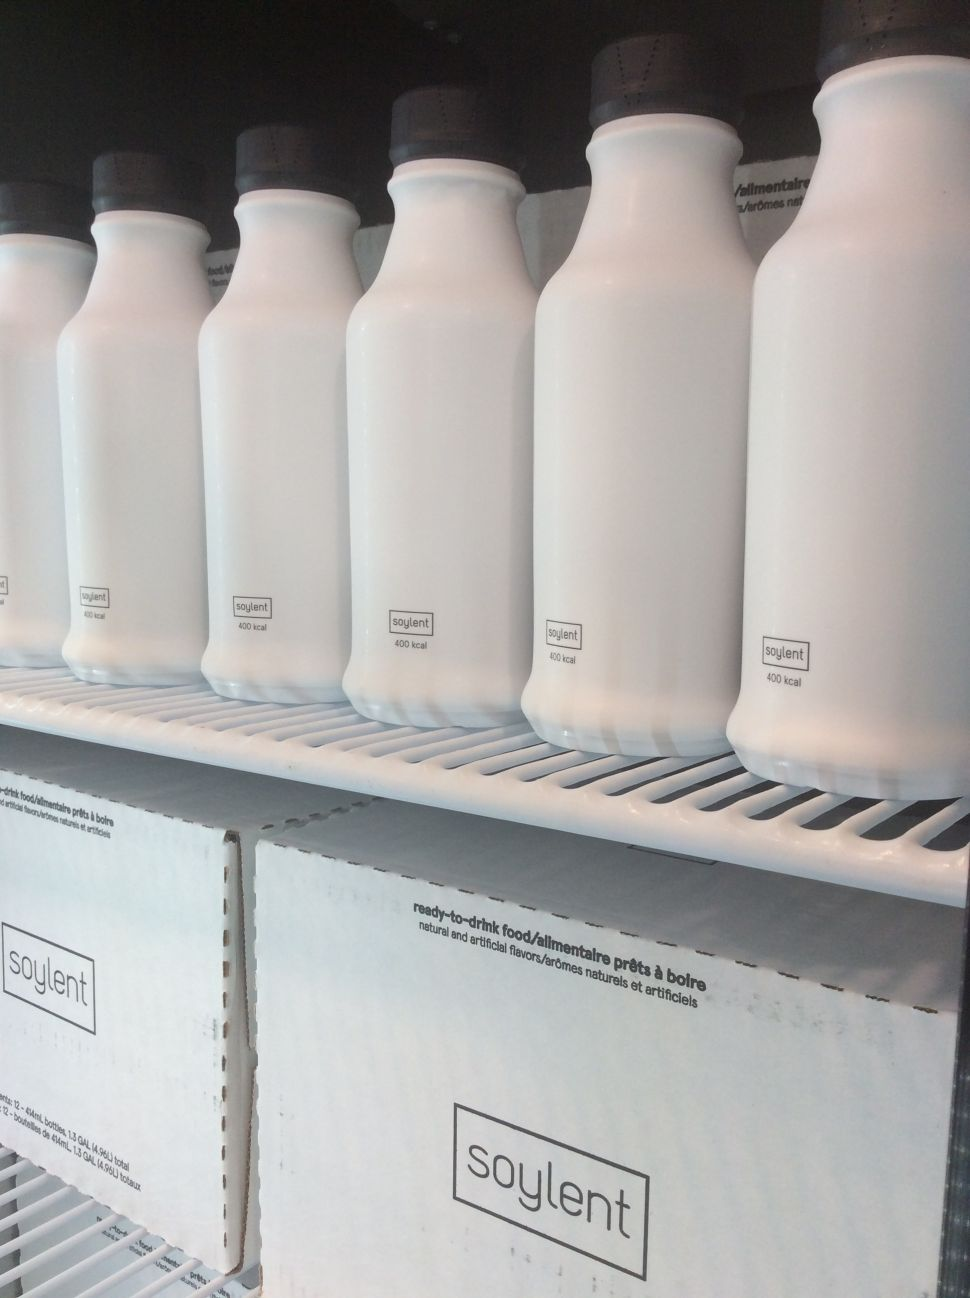 Soylent: No, It's Not People, But Is It Art?